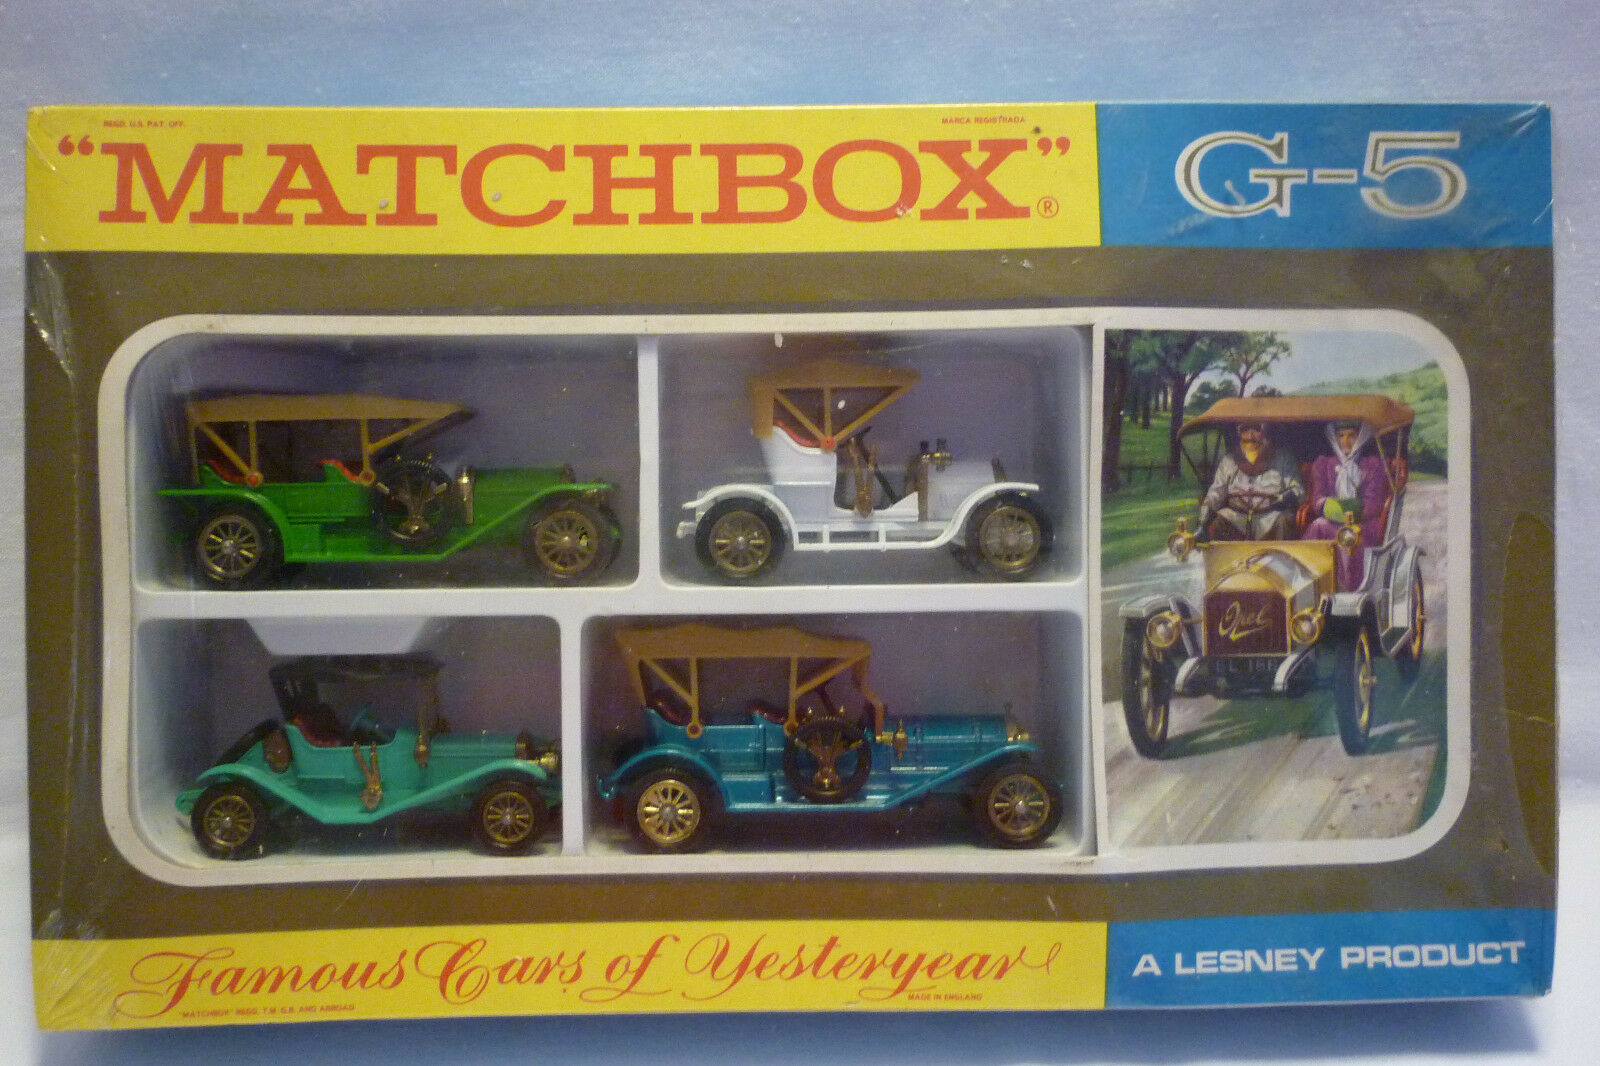 MATCHBOX - GIFTSET - UNGEÖFFNET    FAMOUS CARS OF YESTERYEAR  G-5 OVP (1.MB-1)